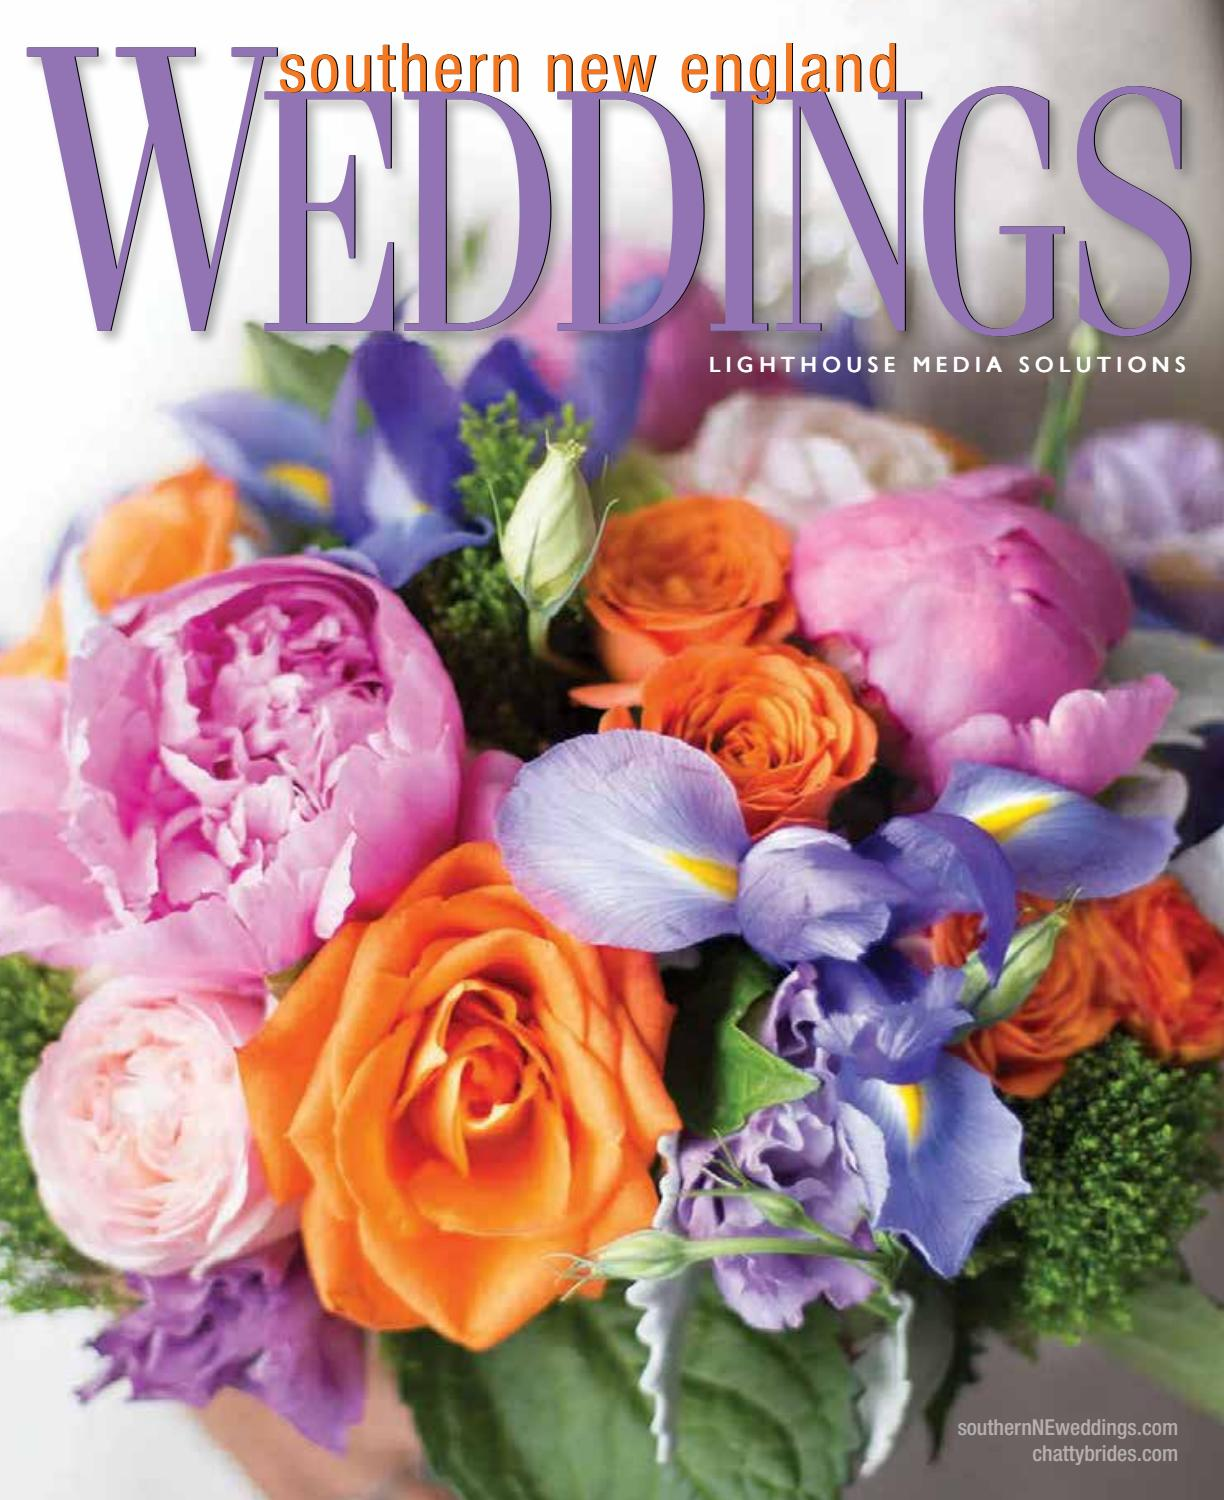 Southern New England Weddings 2014 By Formerly Lighthouse Media